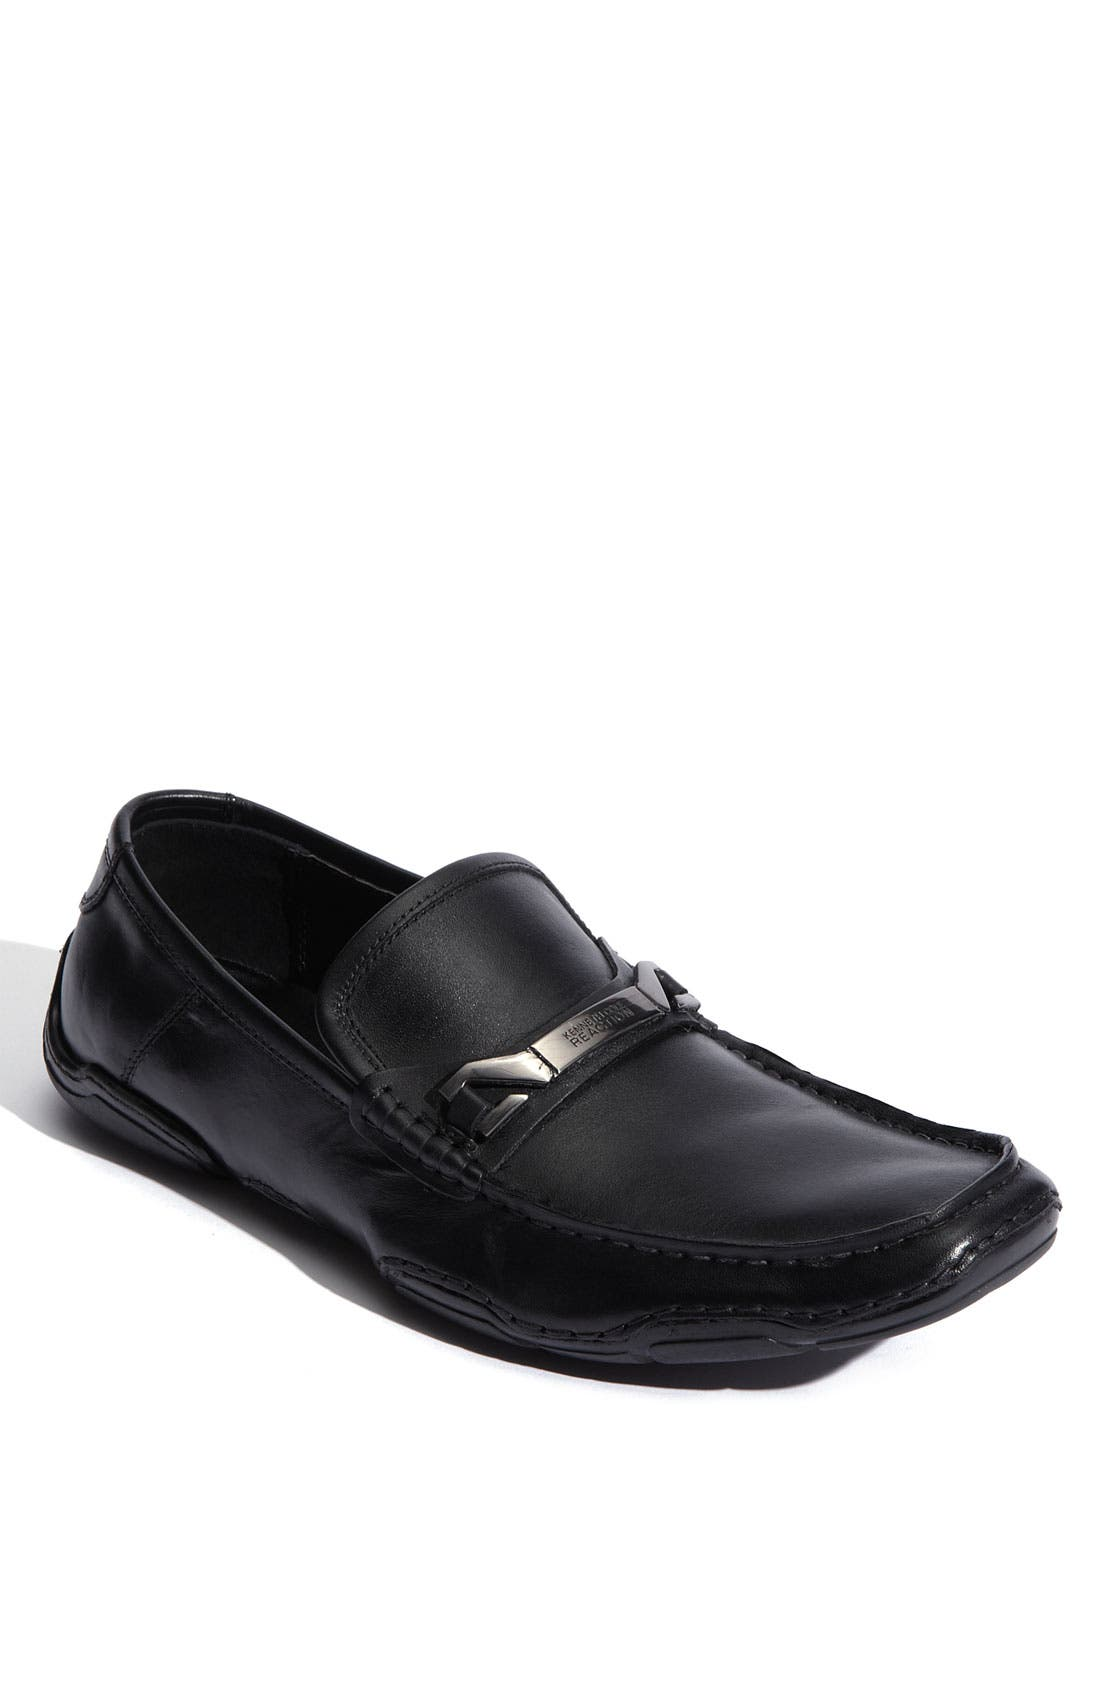 Main Image - Kenneth Cole Reaction 'Post Launch' Loafer